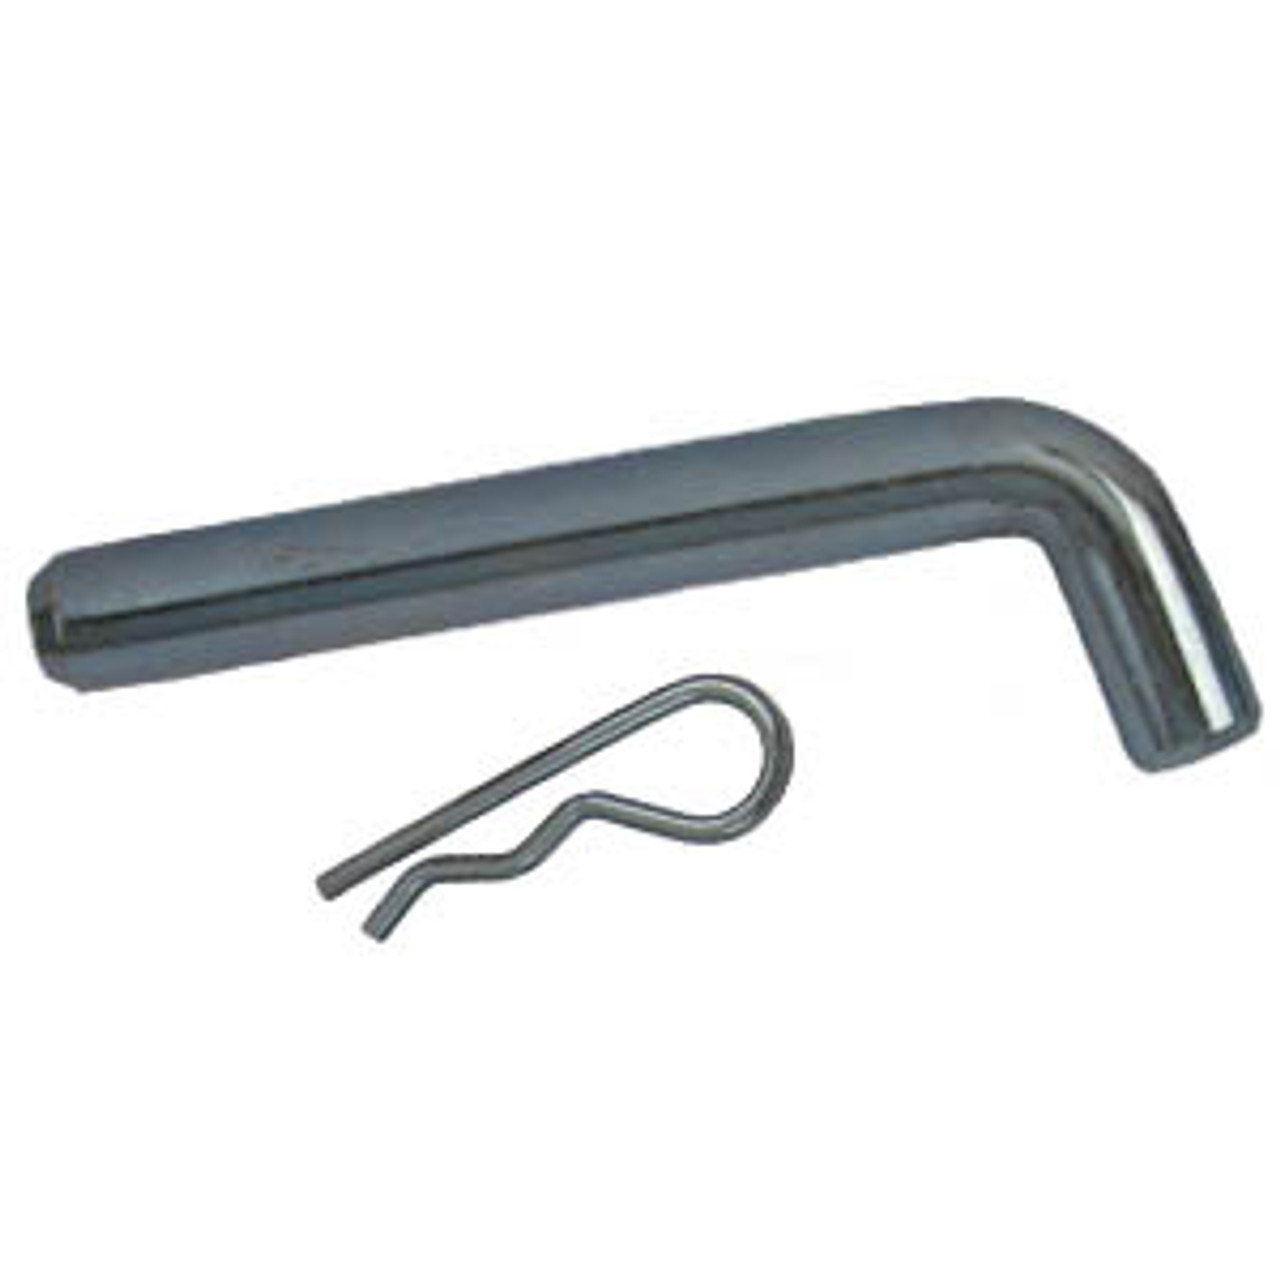 "5/8"" L-Shaped Pin with Clip"